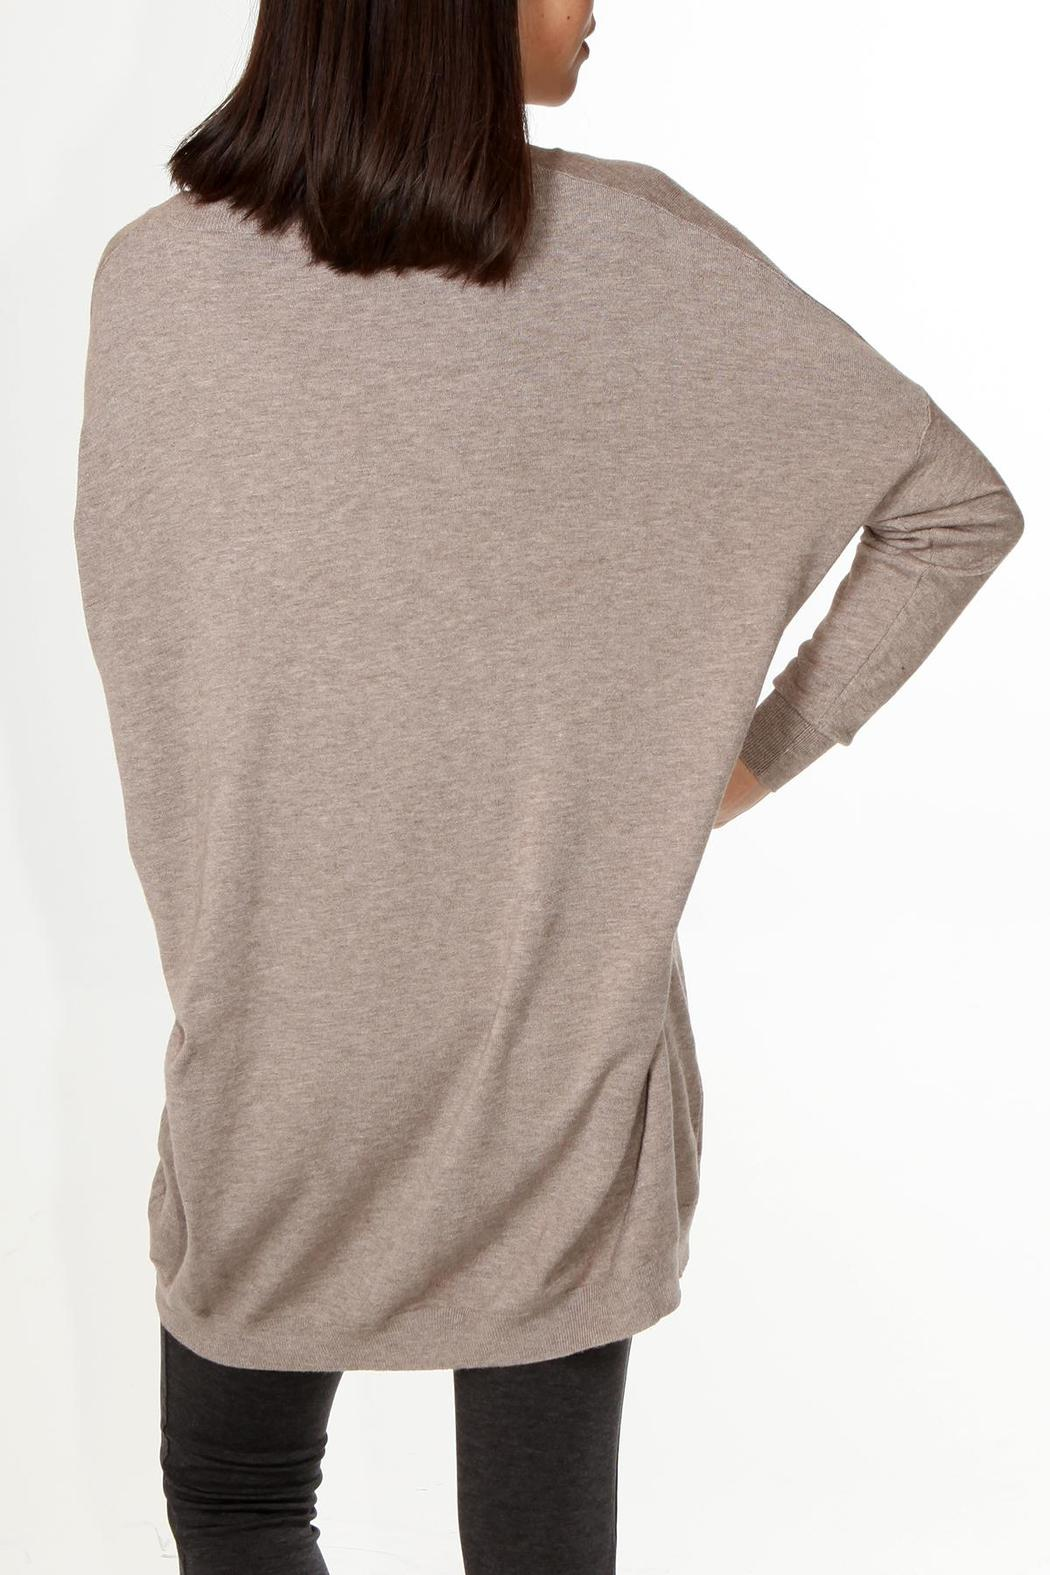 Dreamers Oversized Slouchy Sweater from Los Angeles by Goldie's ...